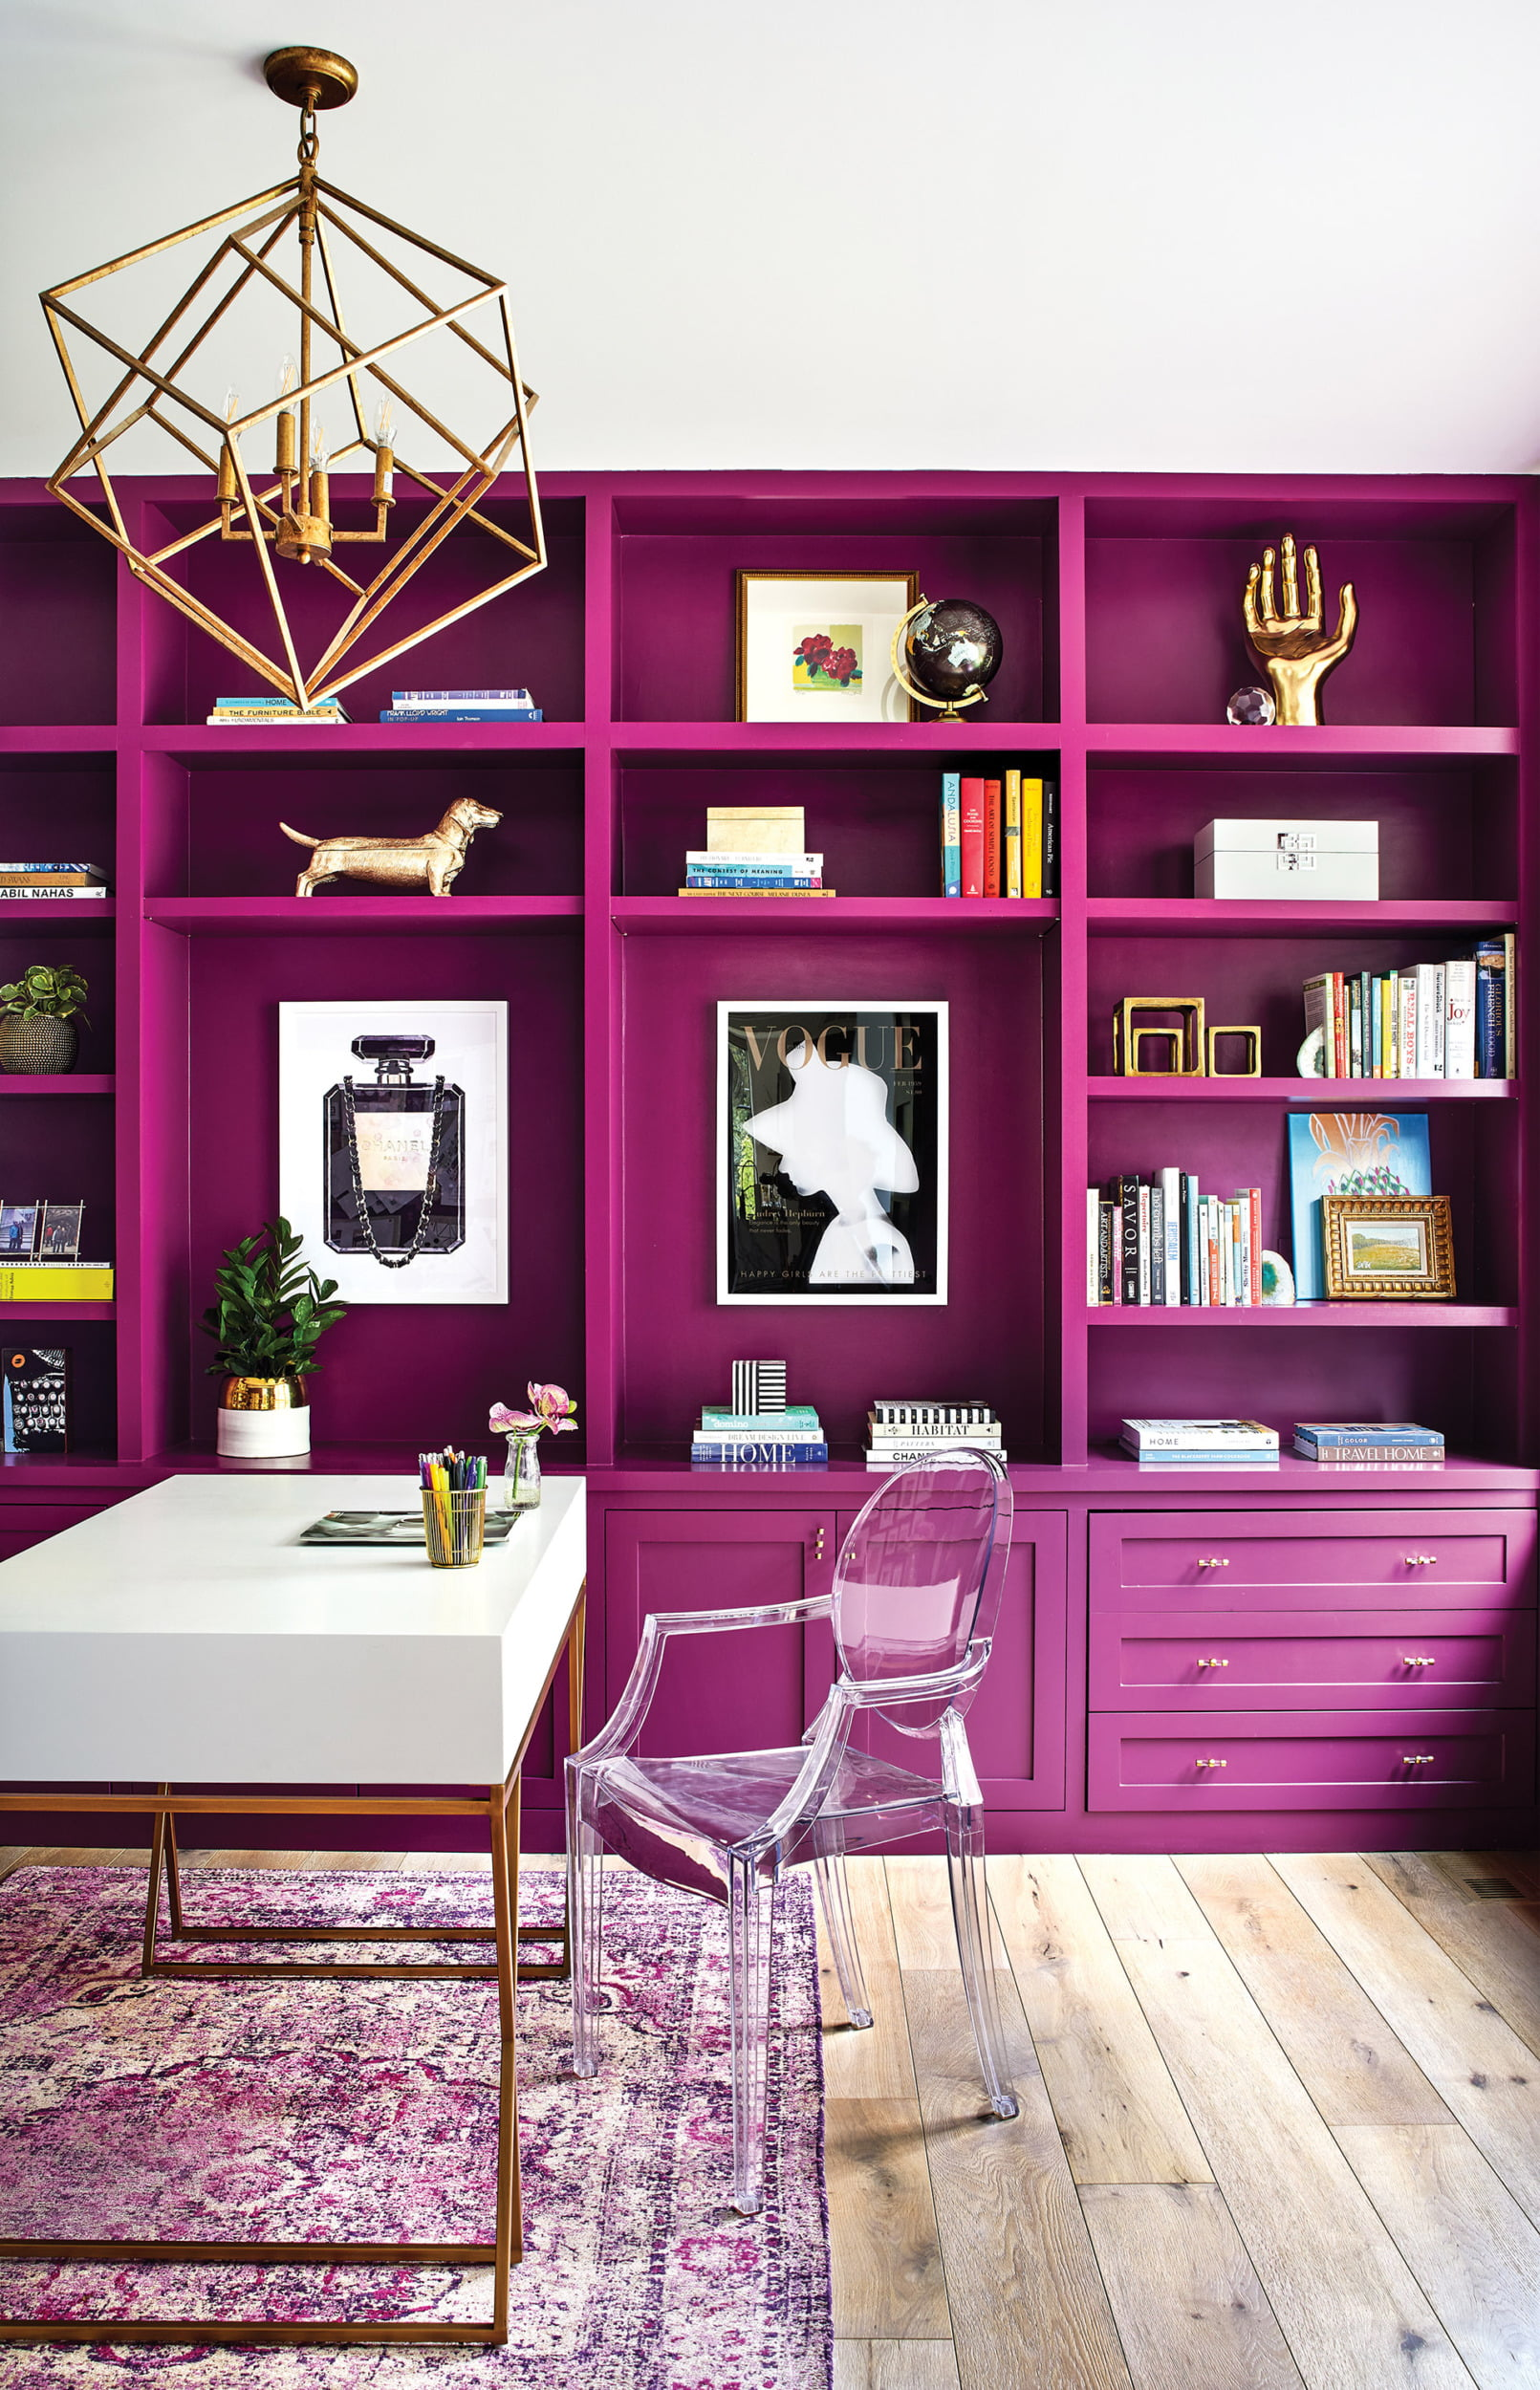 Bright-pink home office features chic writing desk and acrylic chair atop a colorful rug.